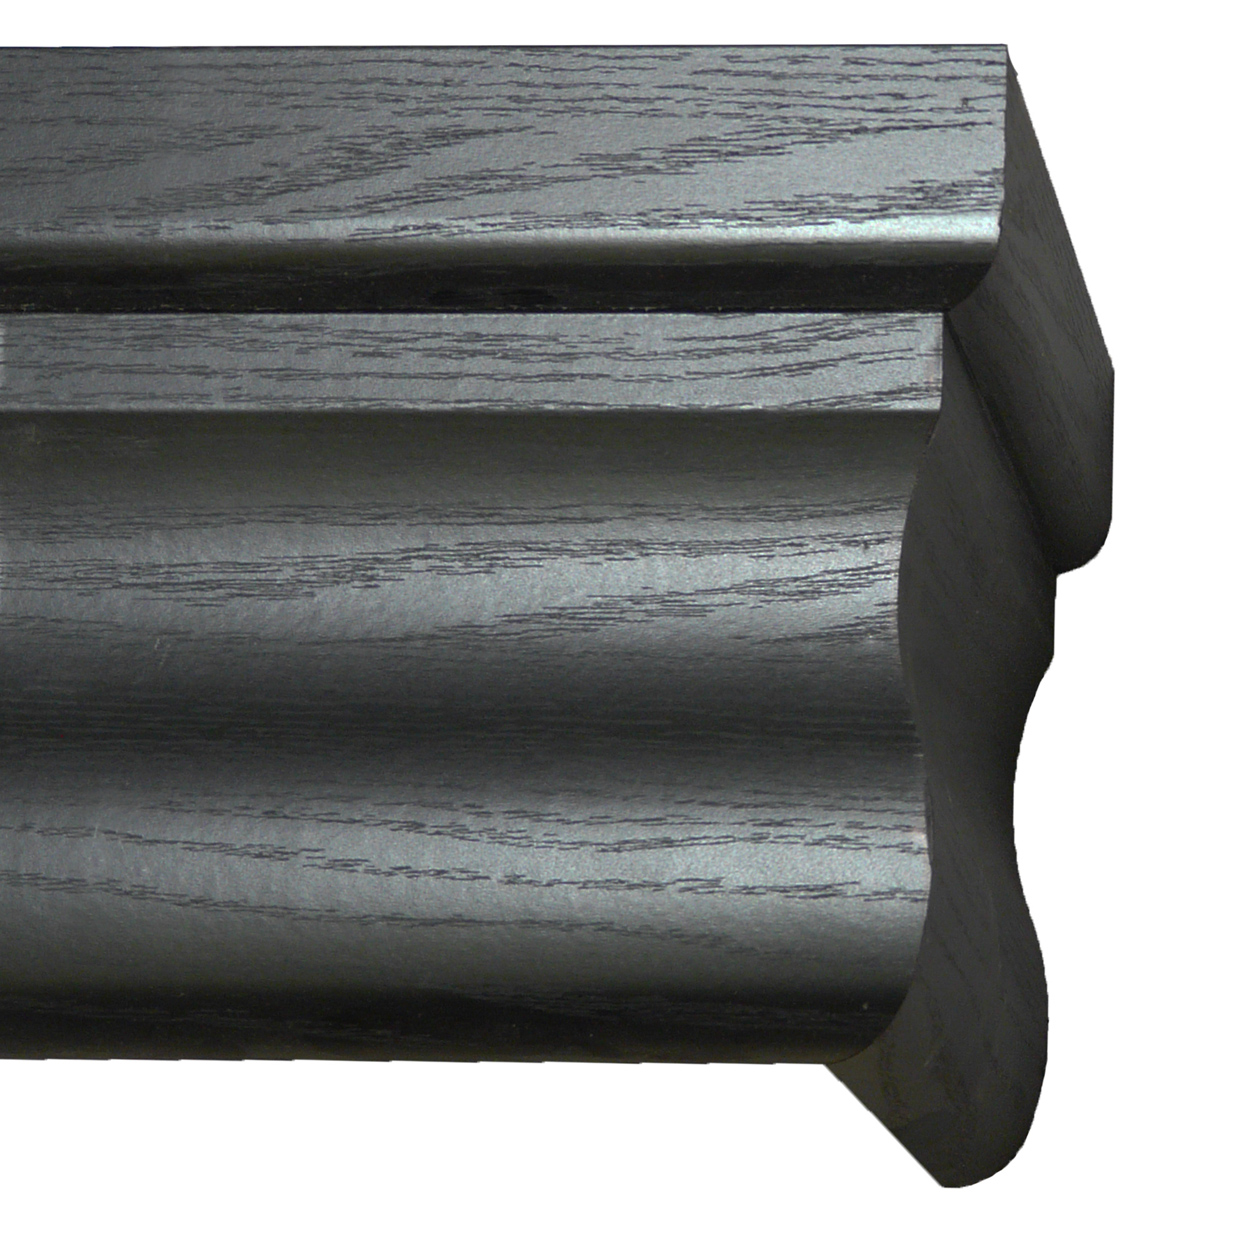 Classic Black Wood Grain.jpg